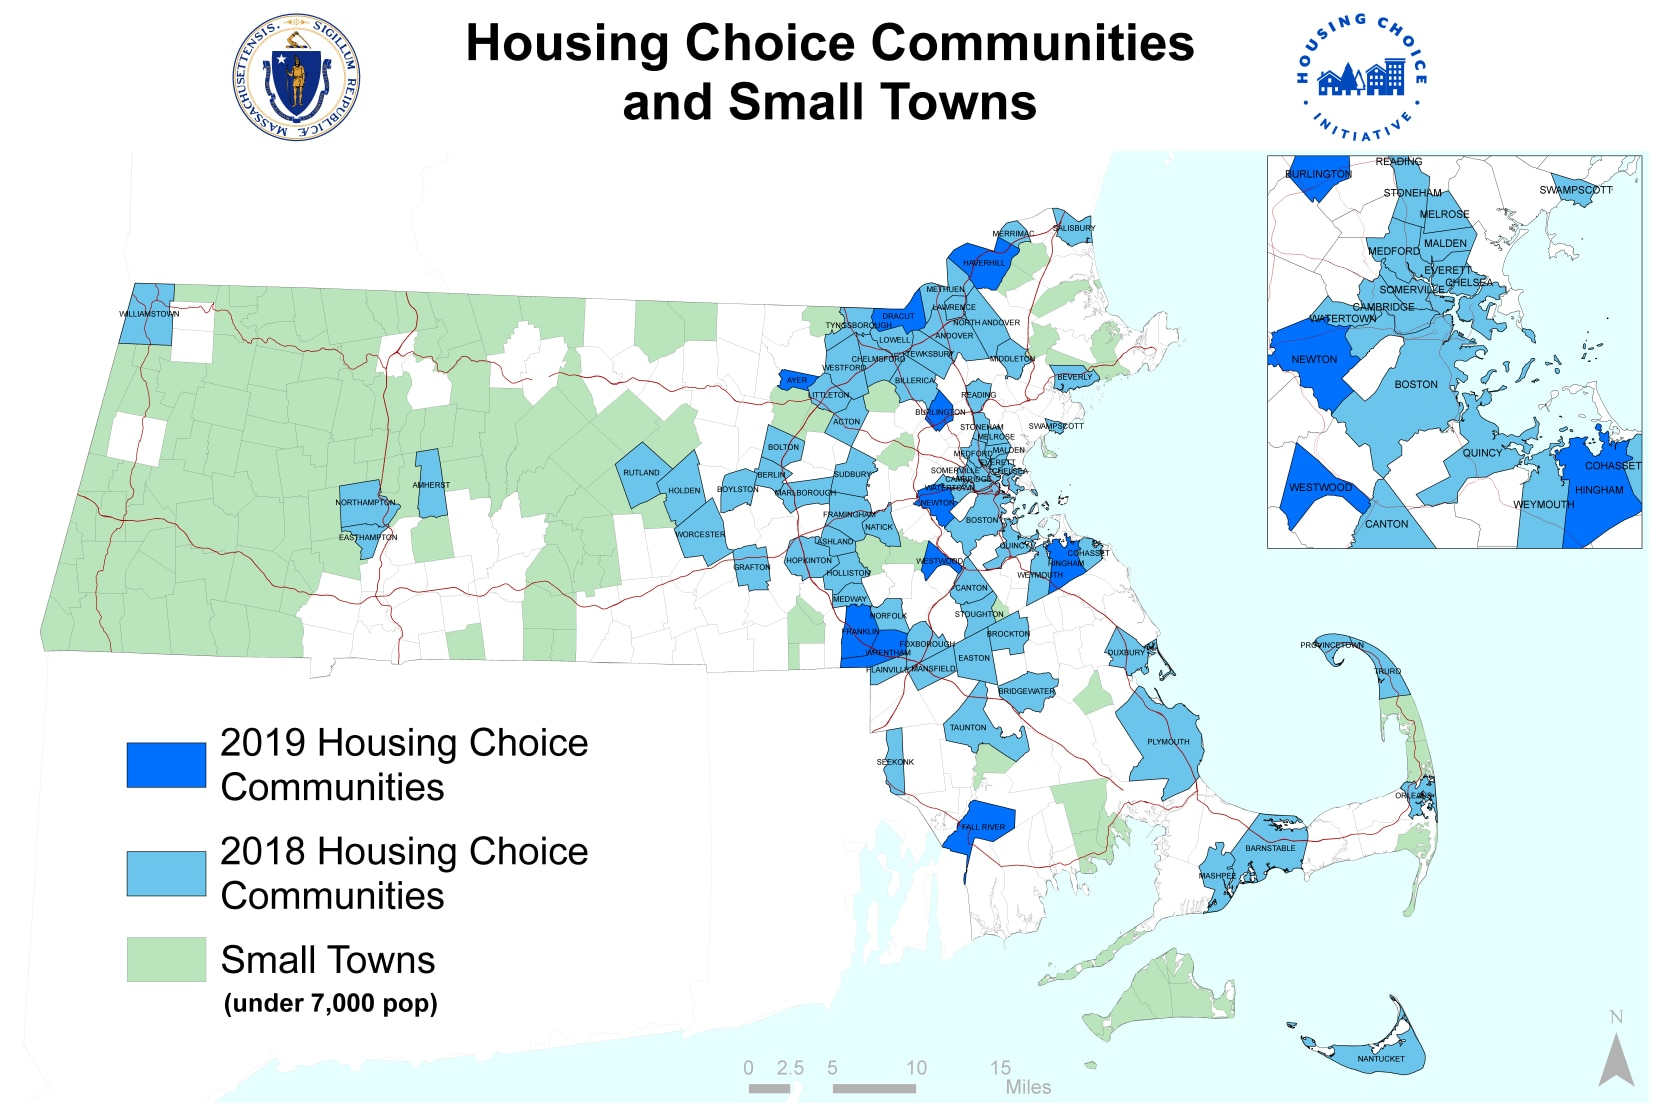 Housing Choice Communities and Small Towns